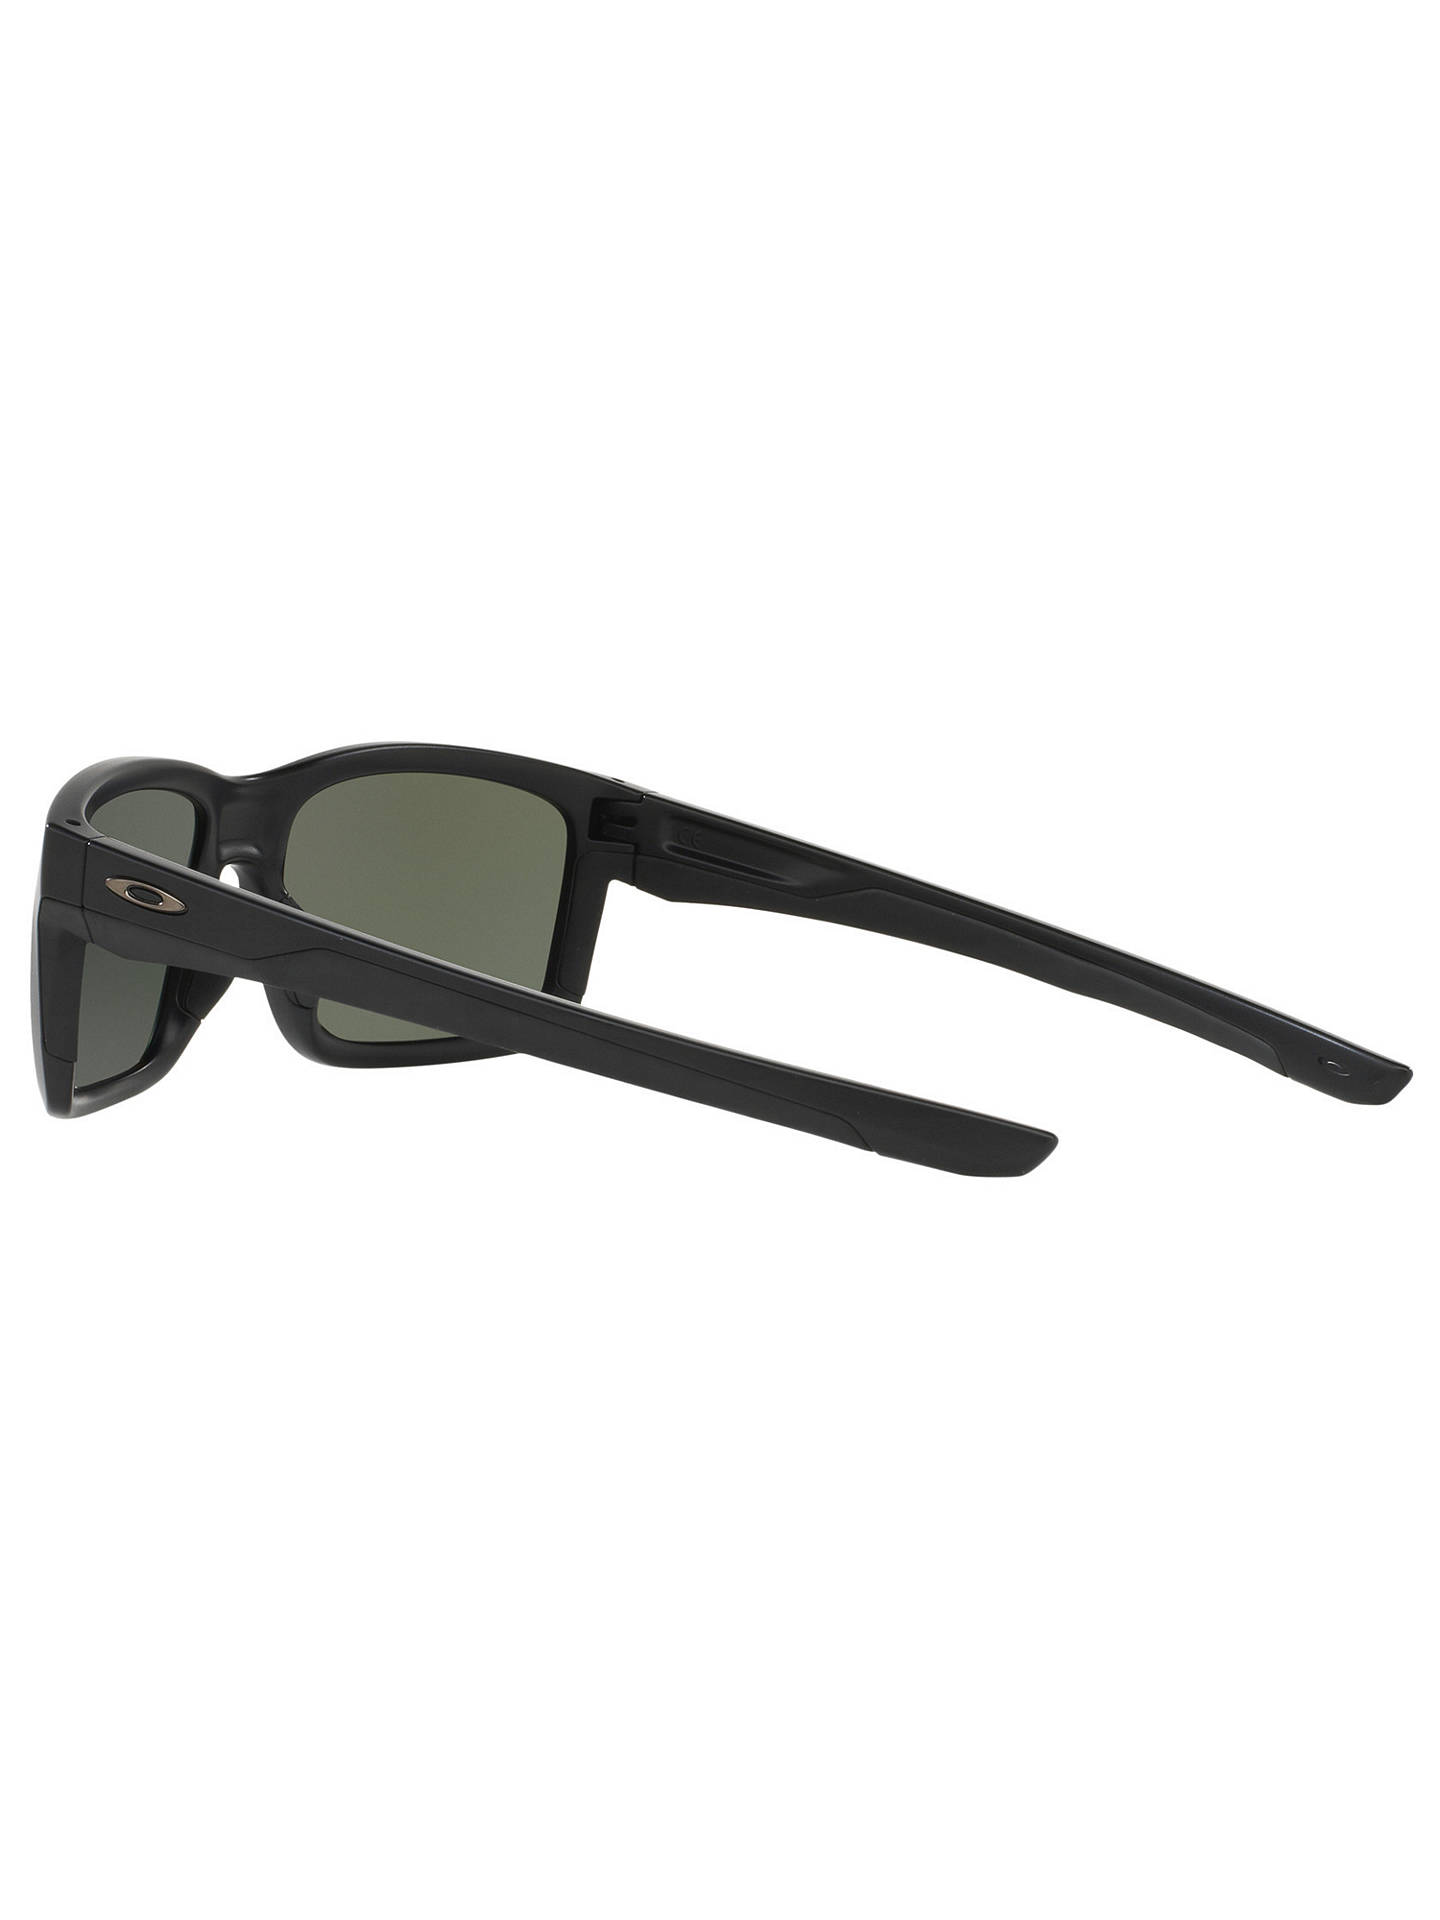 4da2b22a4f Oakley OO9264 Mainlink Prizm Polarised Rectangular Sunglasses at ...